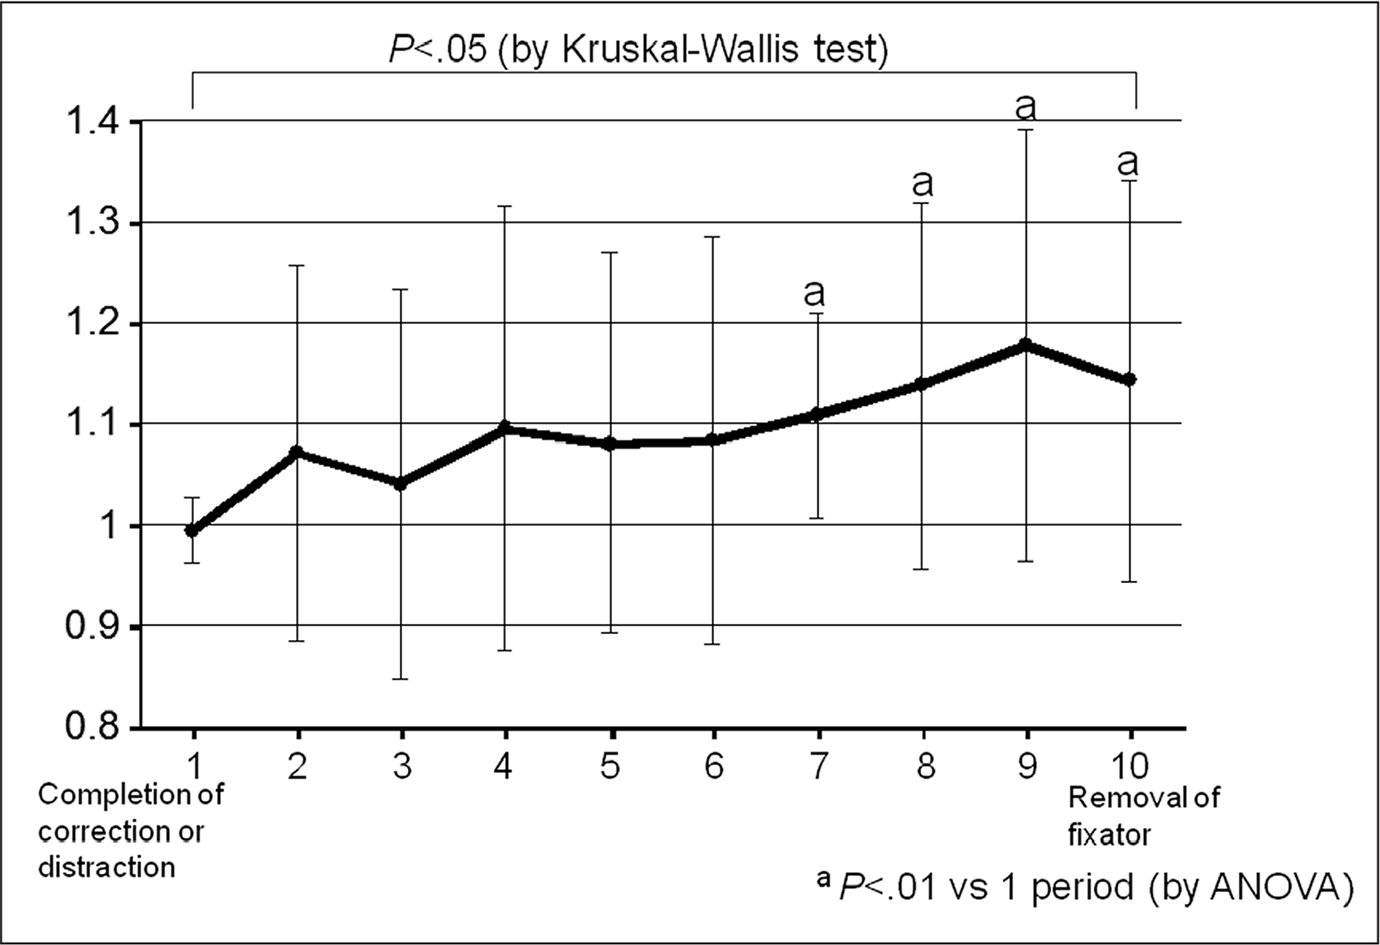 Graph showing the mean rate of change based on the values at completion of correction or distraction until callus maturation. The rate of change of the impedance values is significantly increased compared with baseline for 70% or greater of the callus maturation period. Abbreviation: ANOVA, analysis of variance.